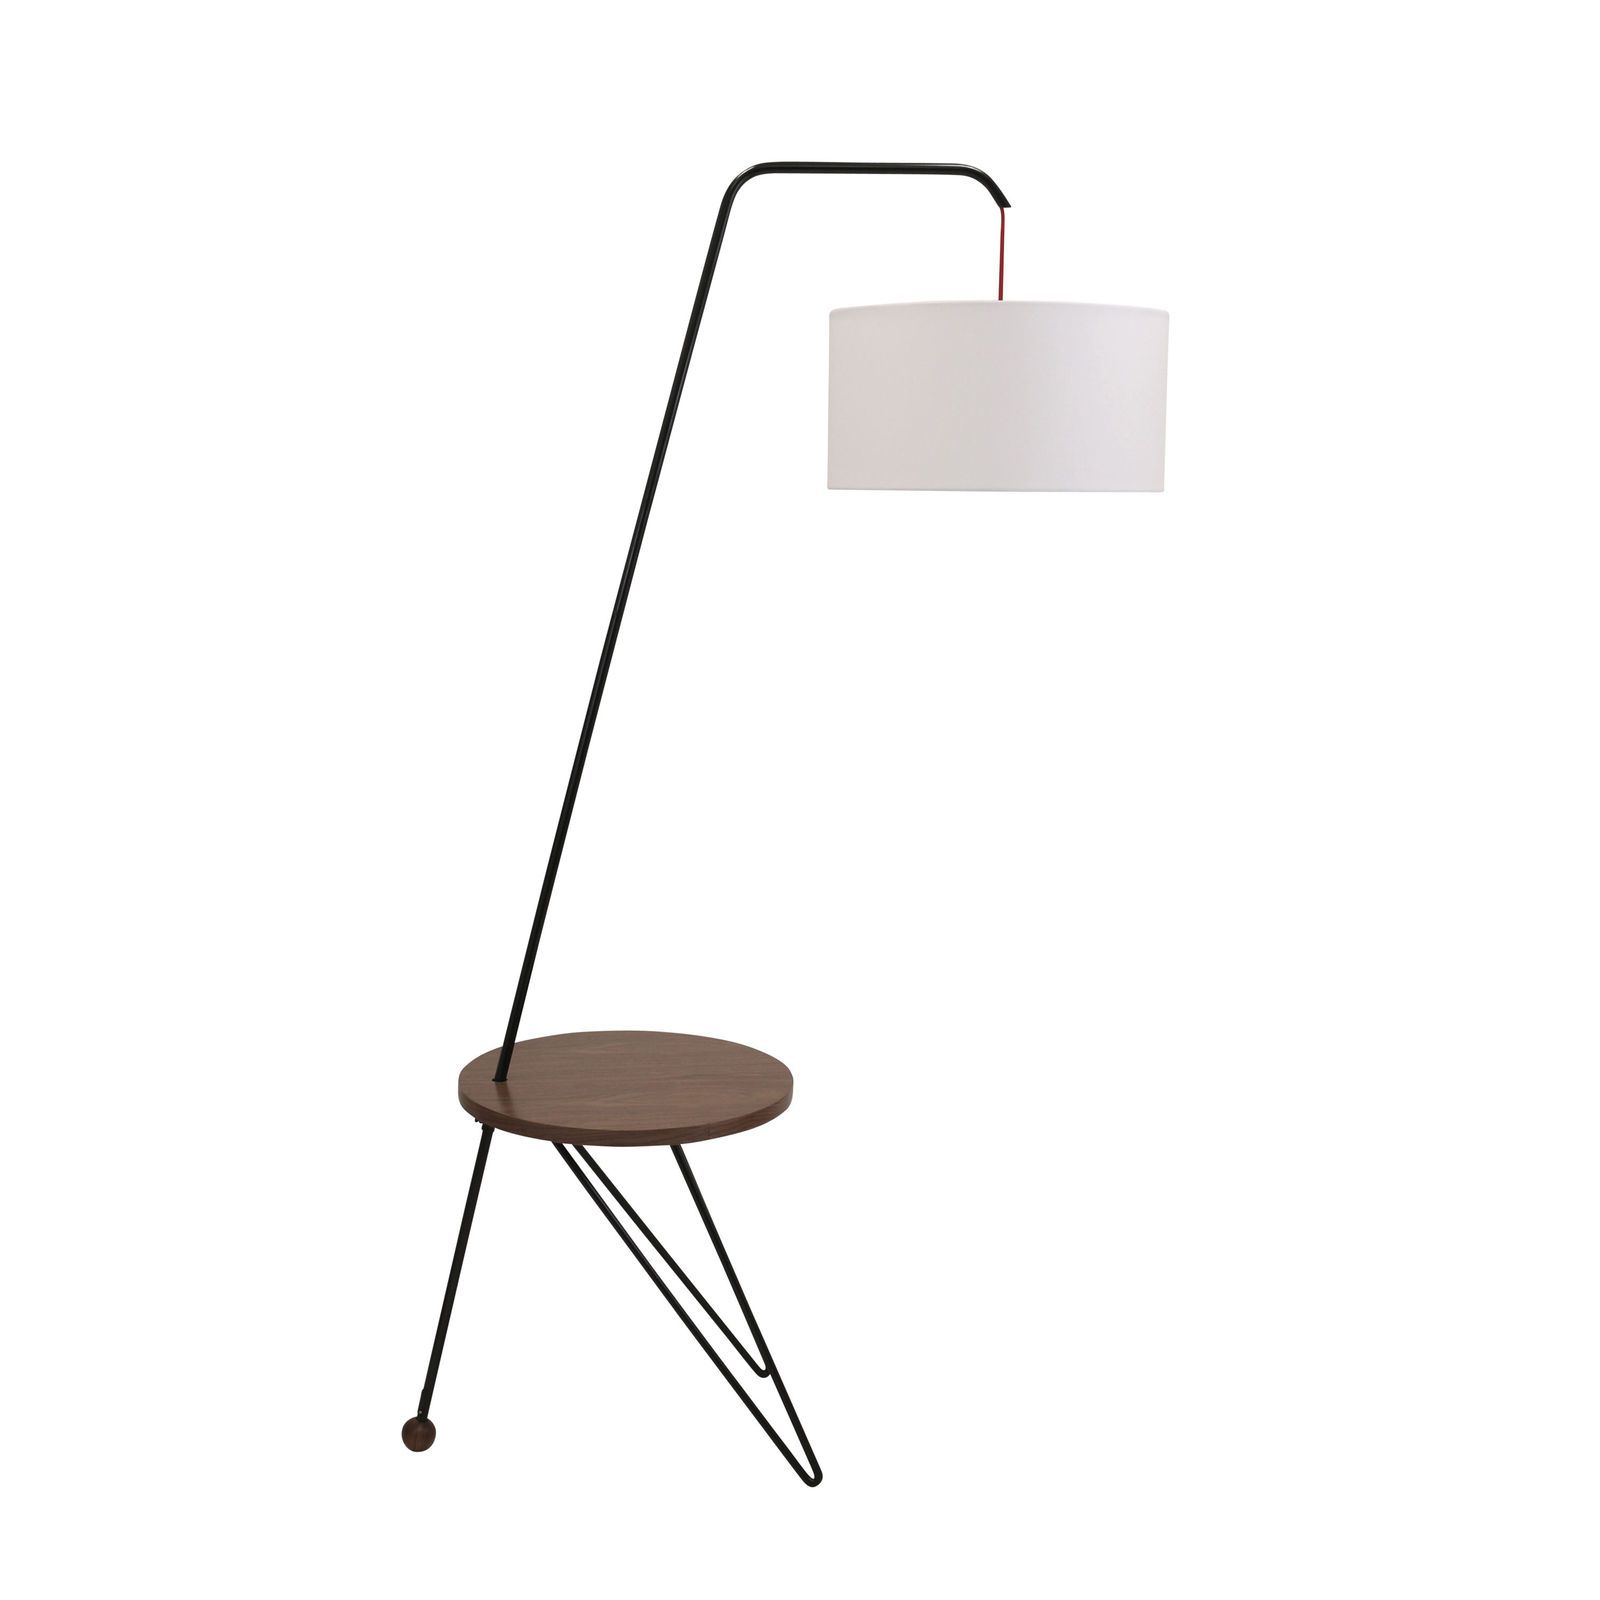 Stork Mid-Century Modern Floor Lamp with Walnut Wood Accent Table ...